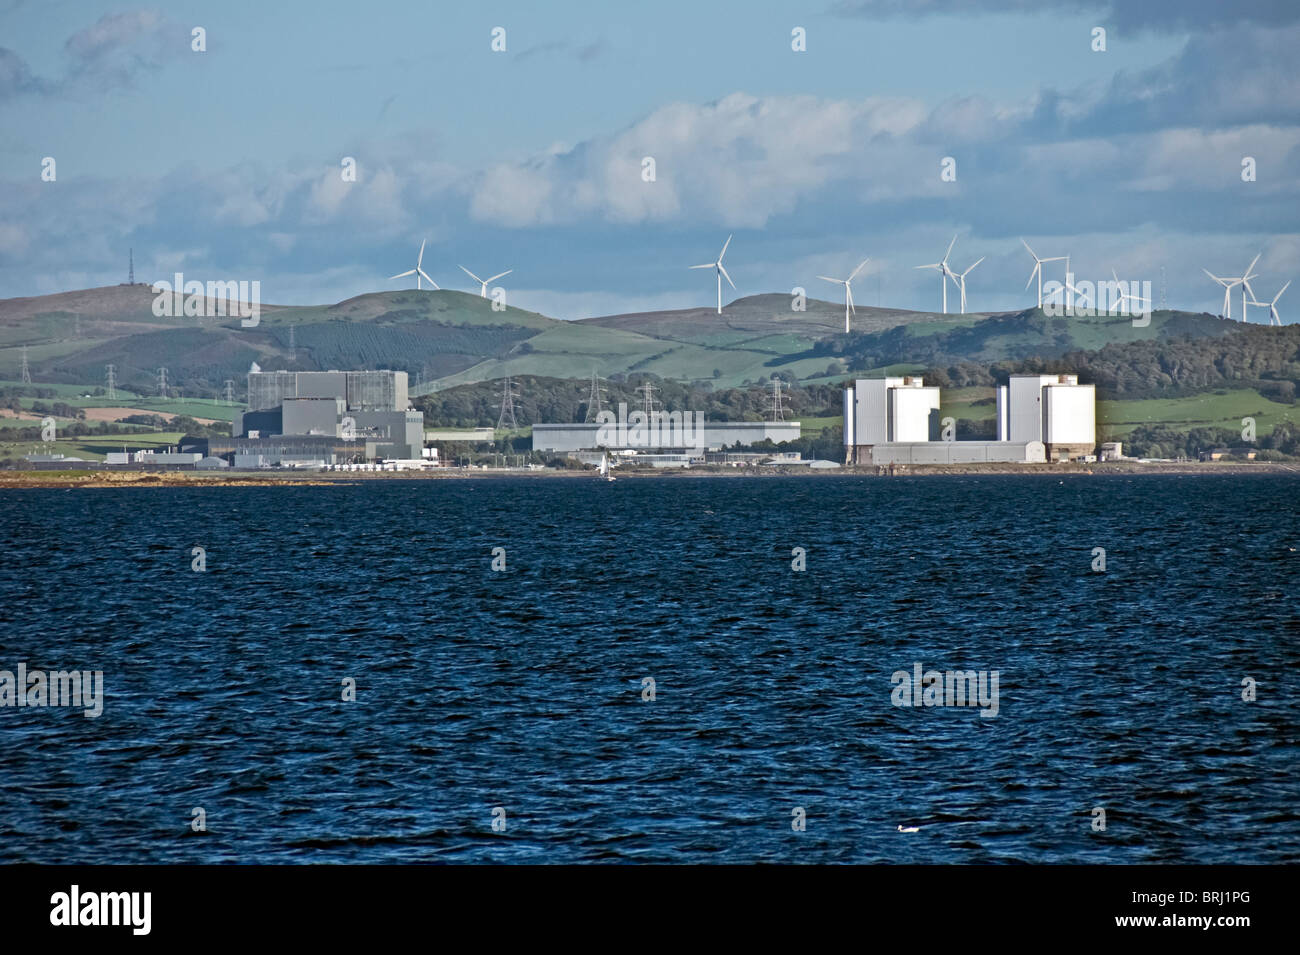 Hunterston Nuclear Power Station seen from the Firth of Forth with wind turbines behind on the hills - Stock Image